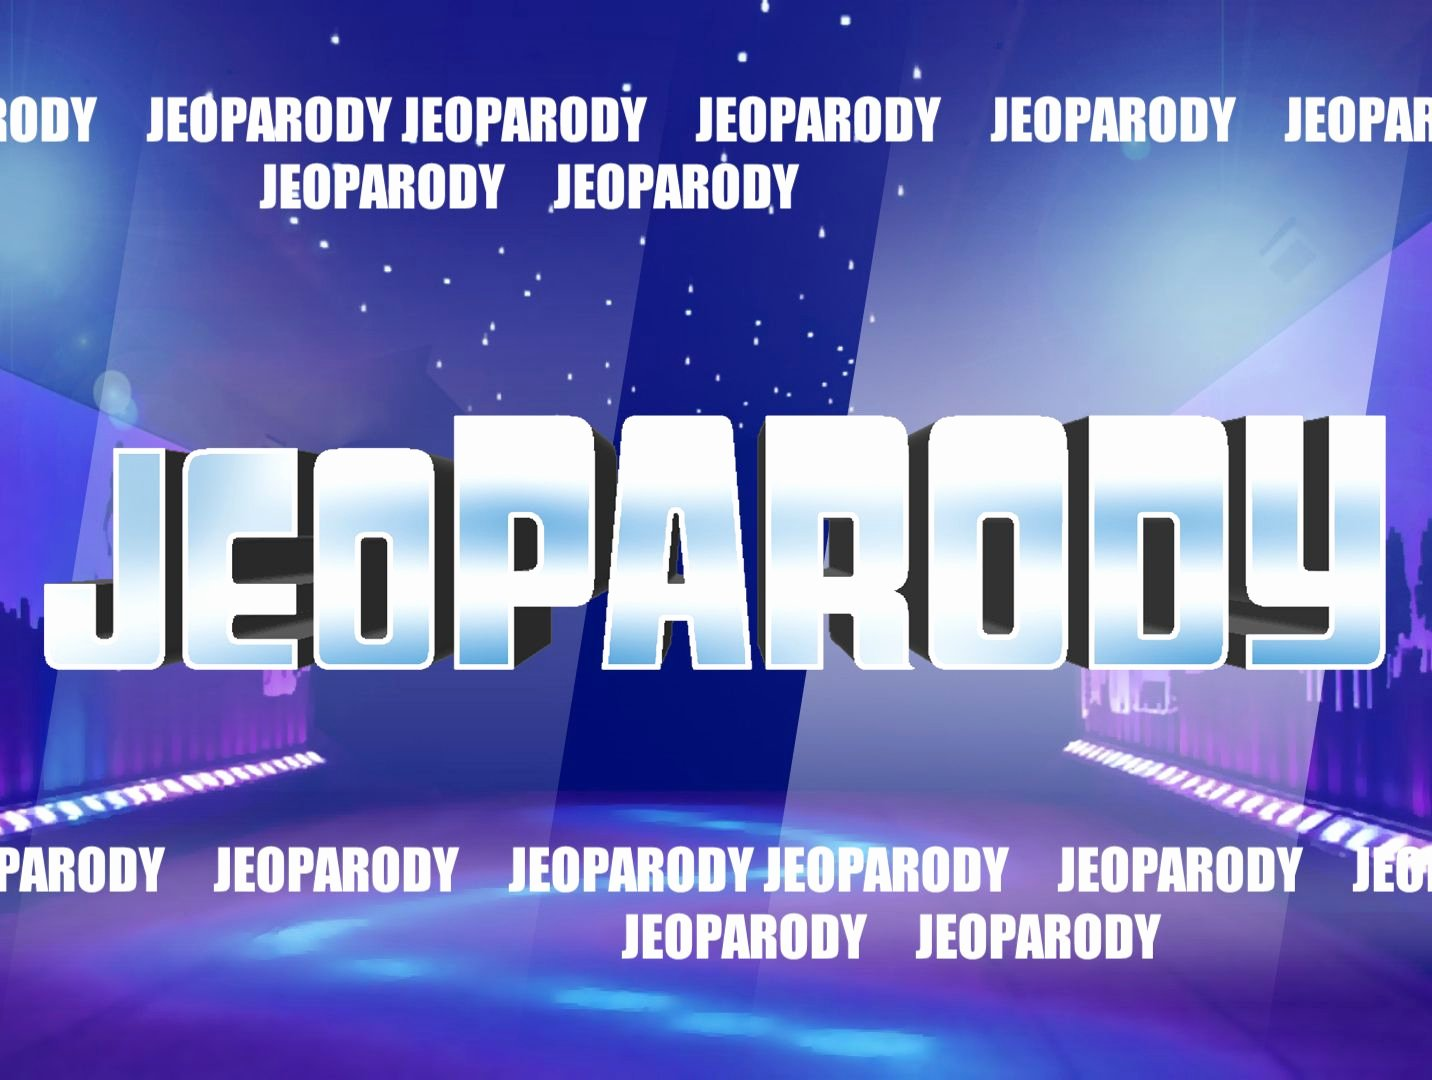 Template Jeopardy Template Jeopardy Template